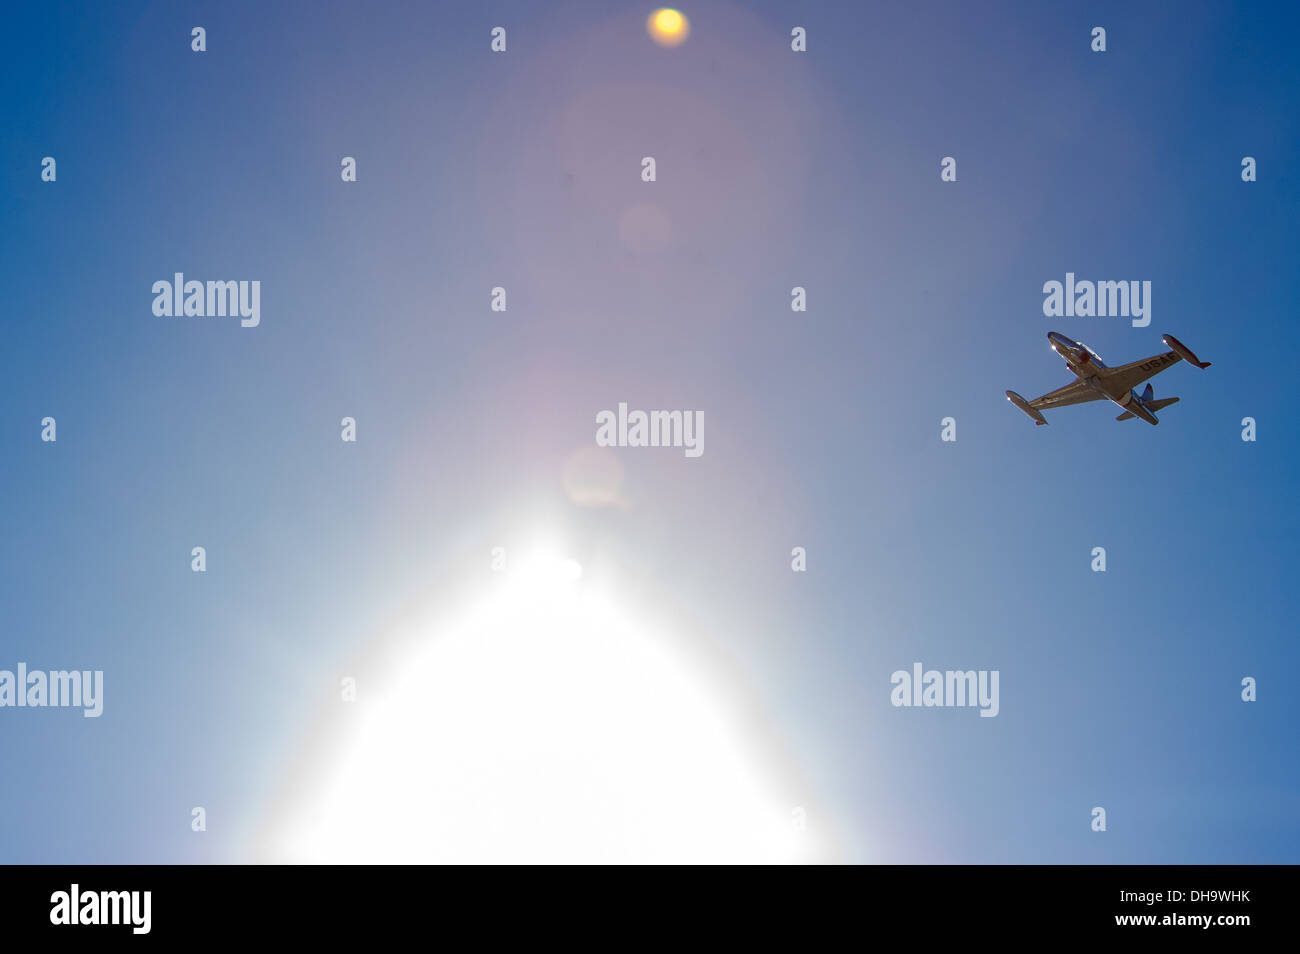 Floating Kaiserslautern Air Fo Stock Photos And Air Fo Stock Images Alamy